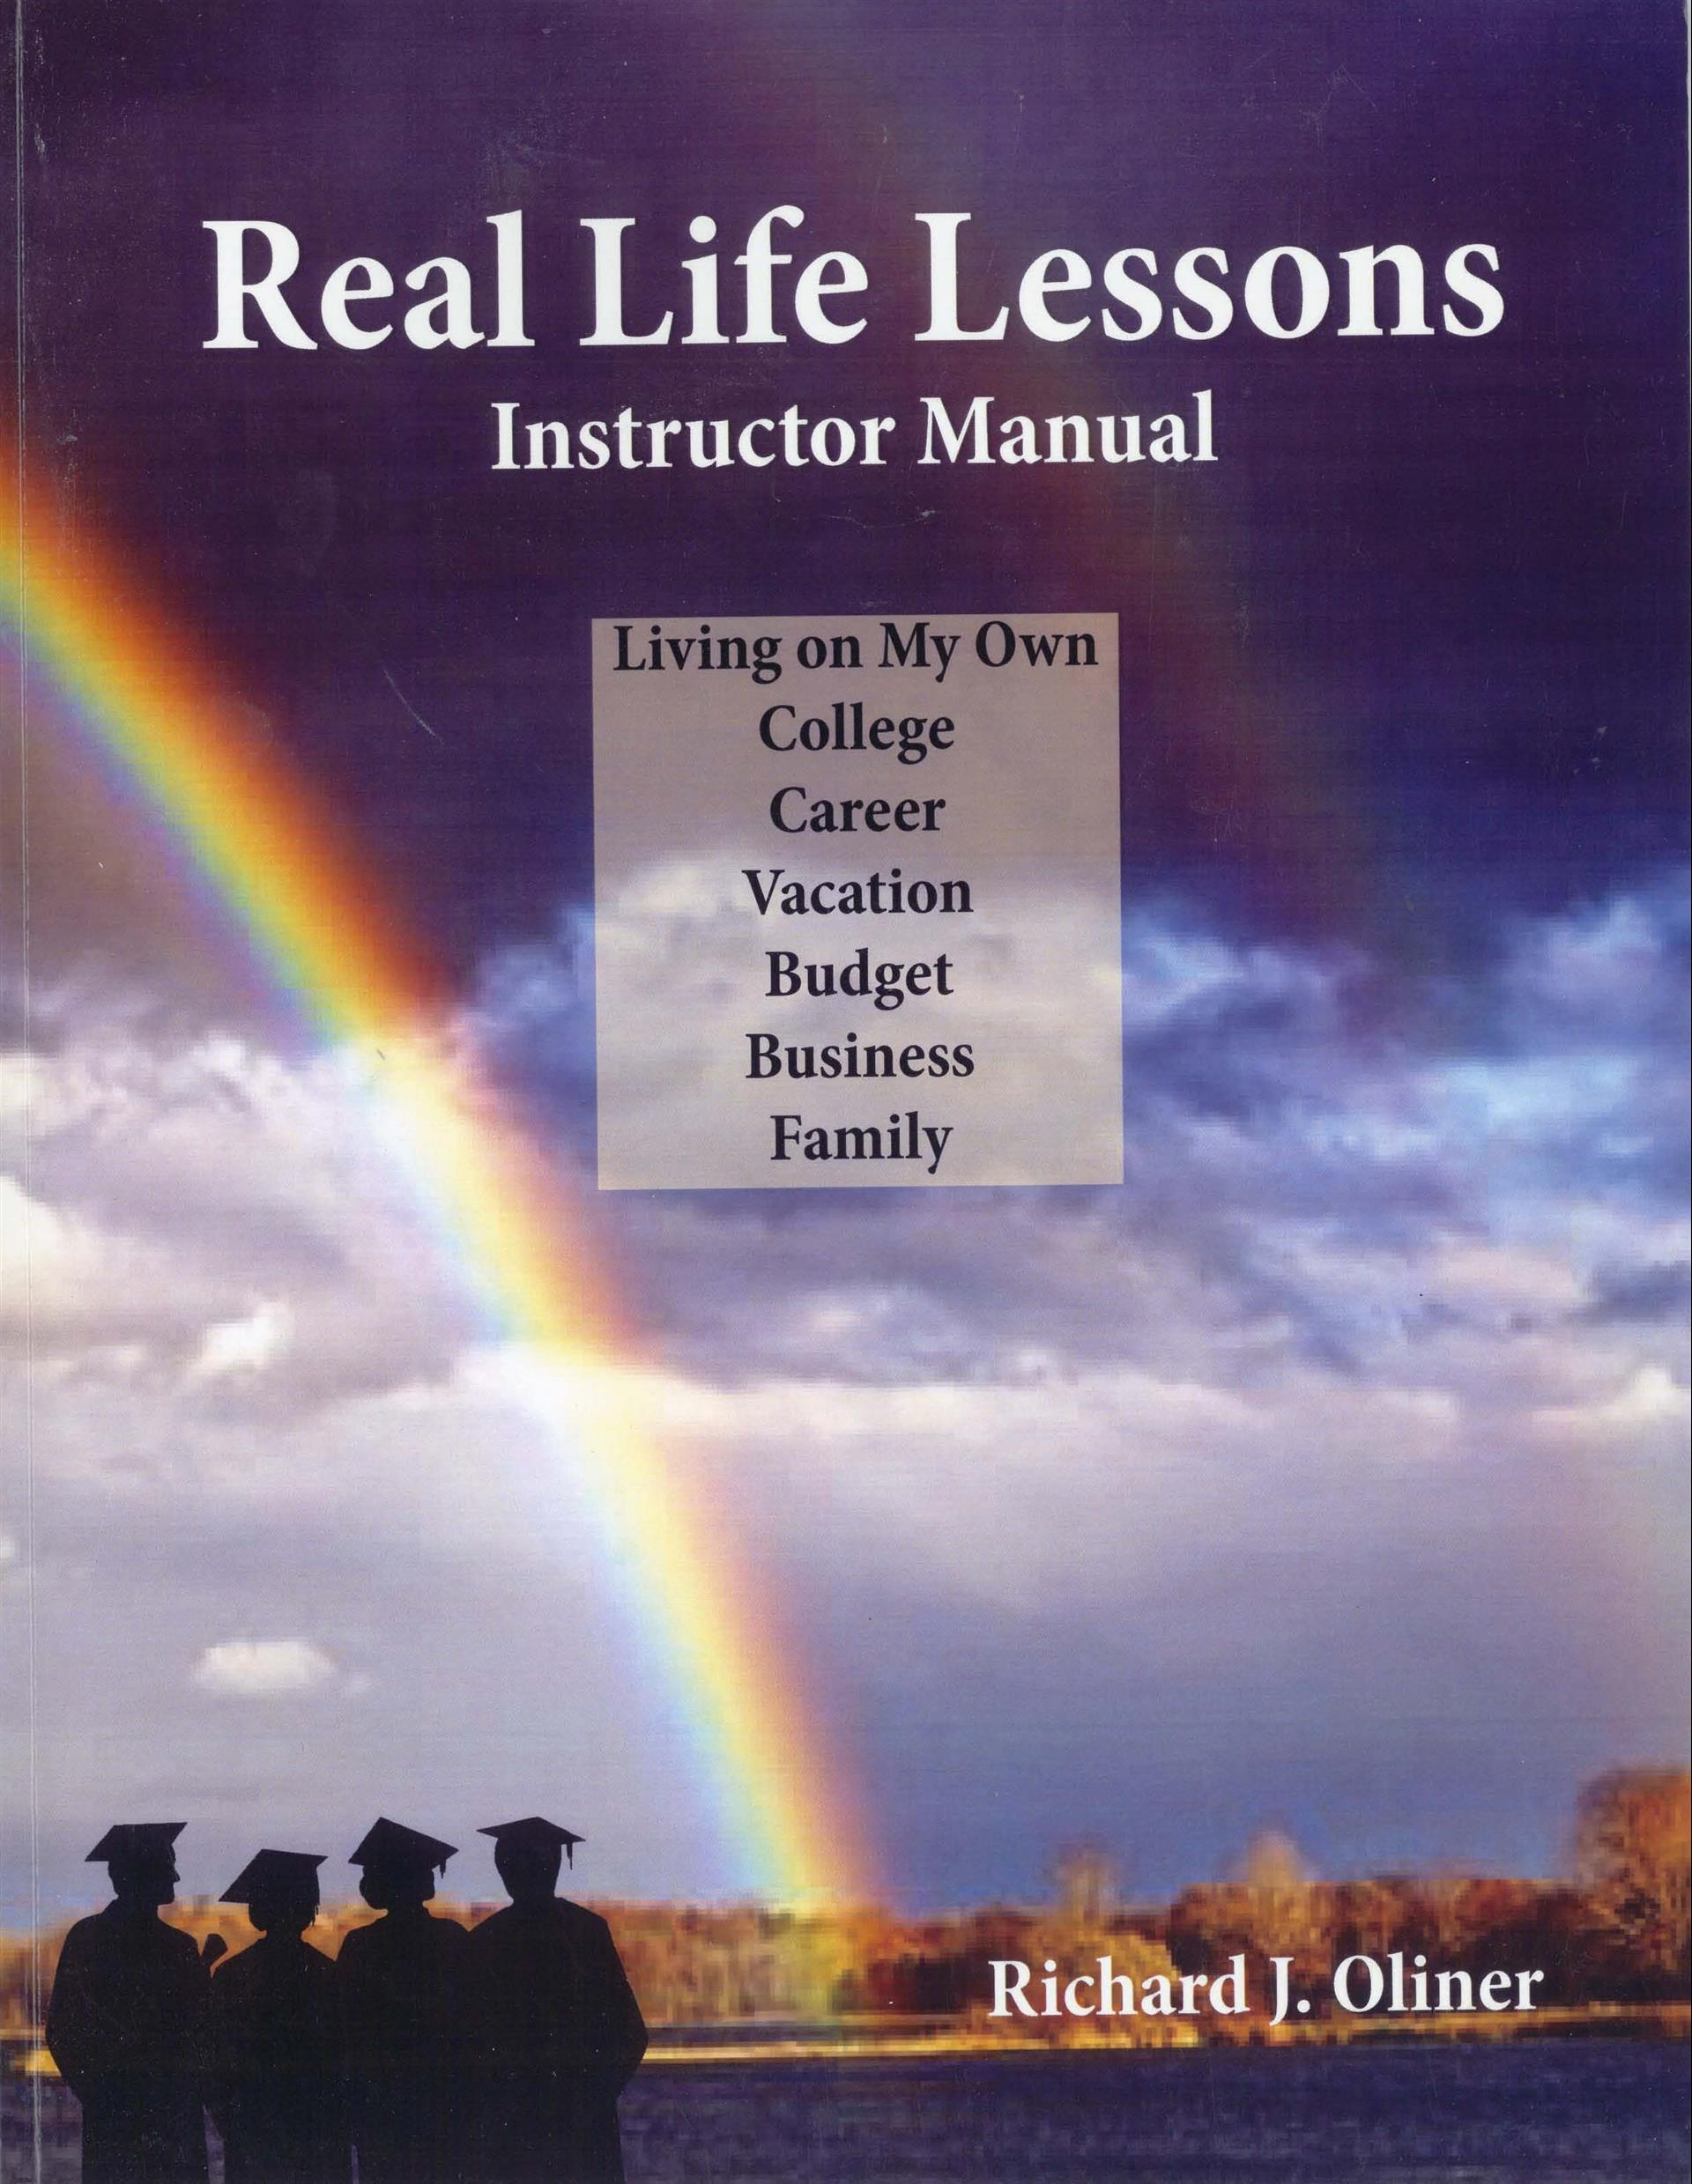 Real Life Lessons